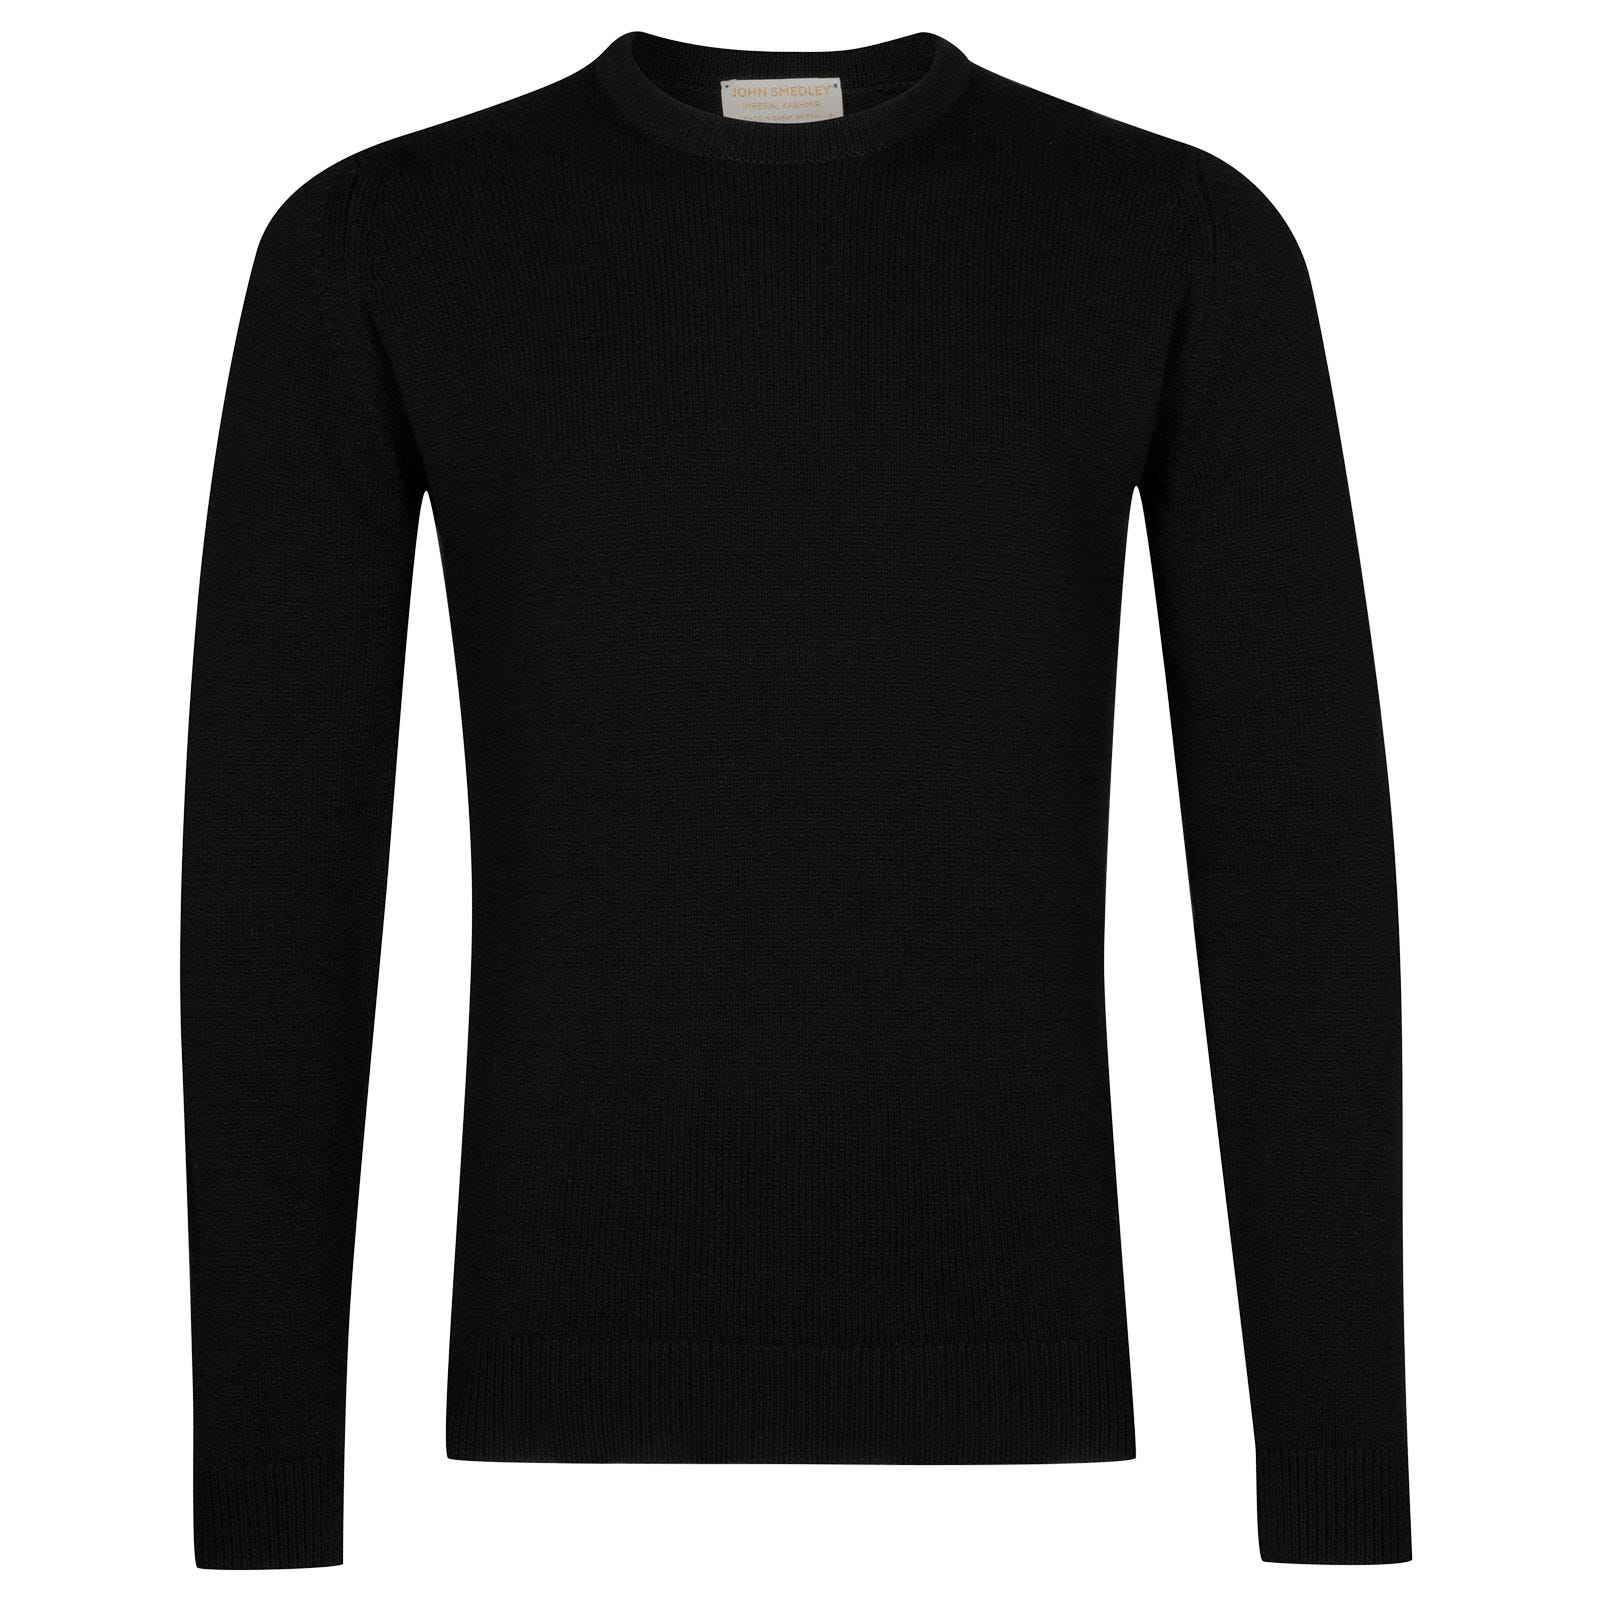 John Smedley Crowford Wool and Cashmere Pullover in Black-XL